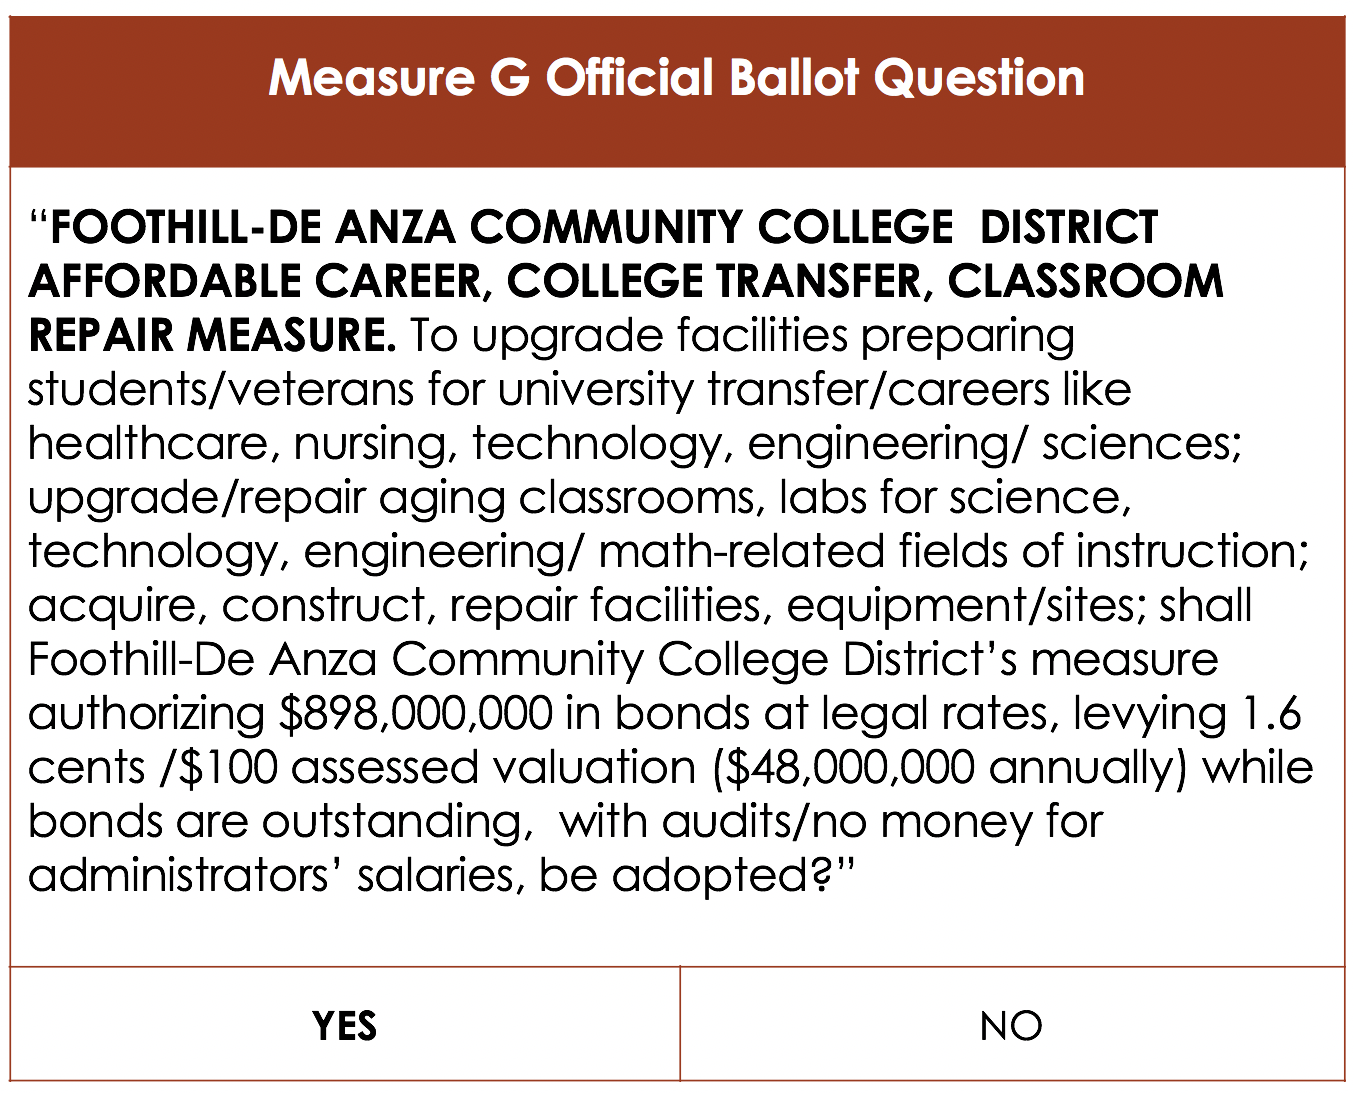 Measure G official ballot question